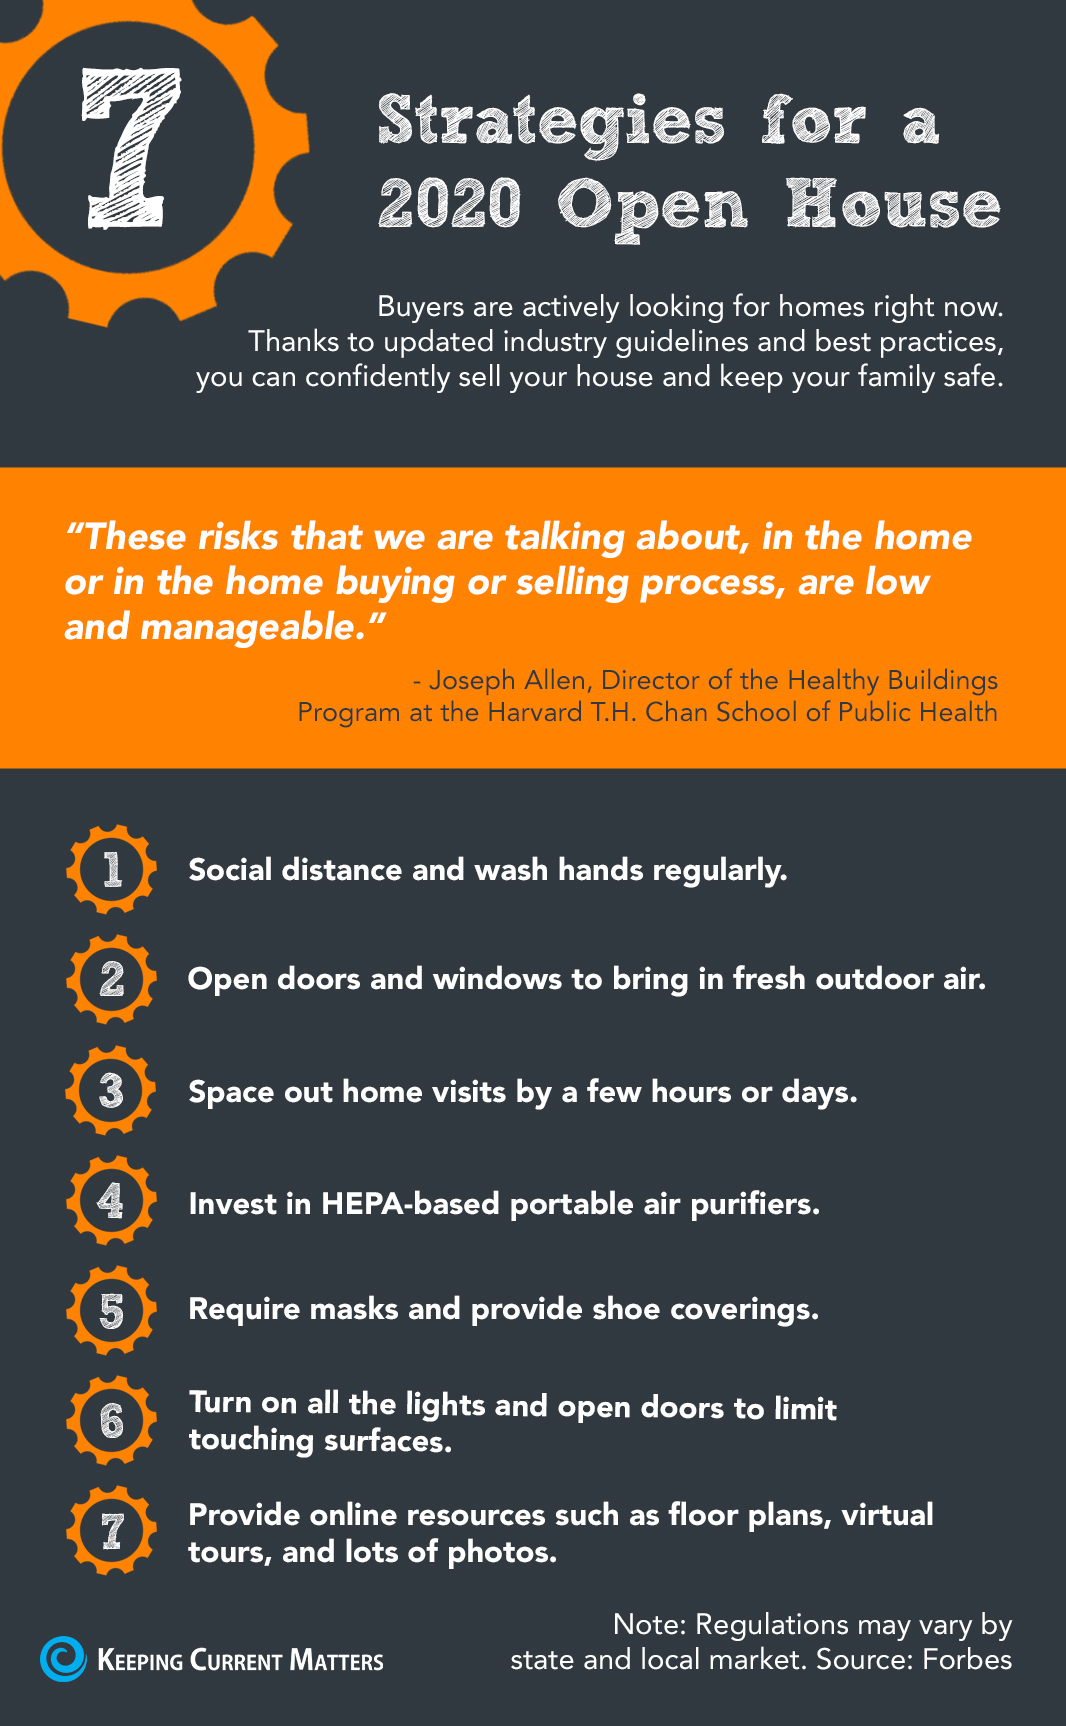 7 Strategies for a 2020 Open House [INFOGRAPHIC] | Keeping Current Matters